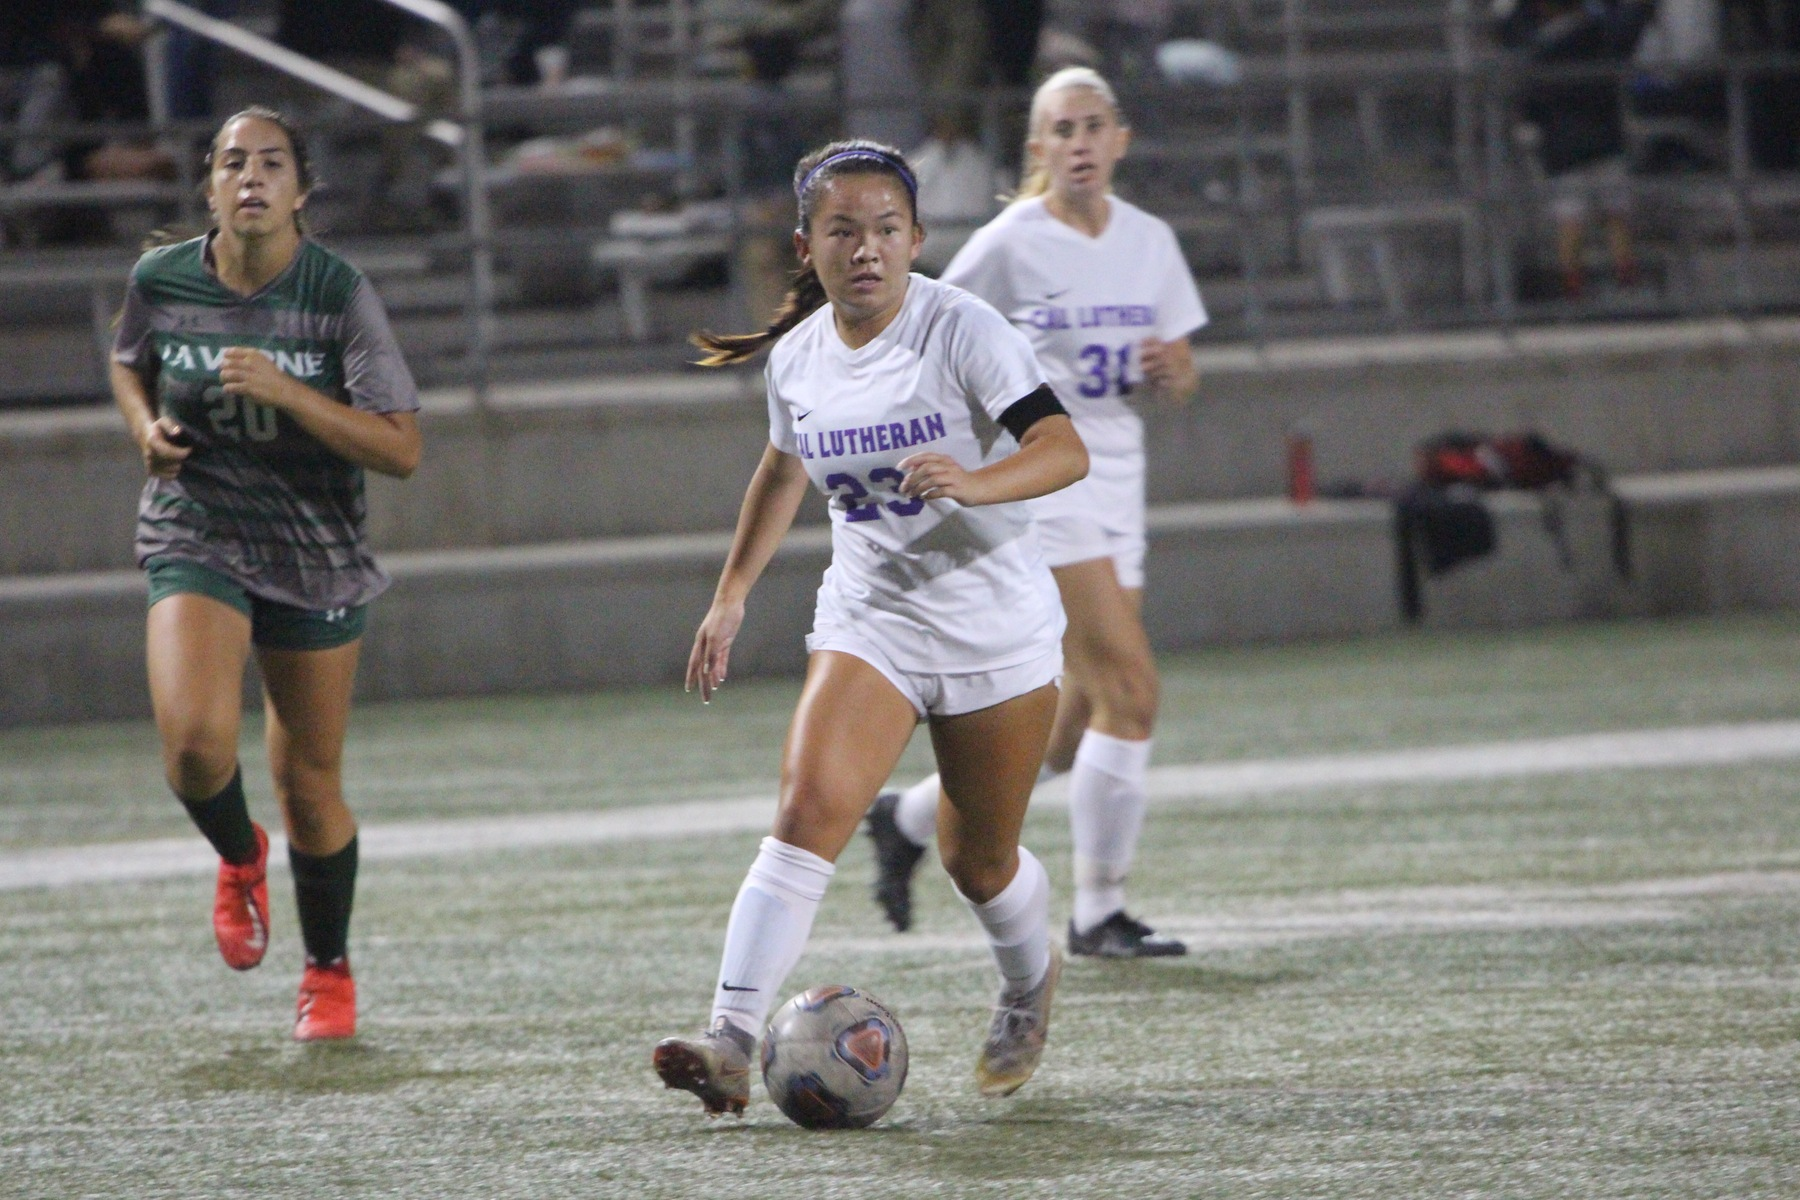 Regals Cruise to 3-0 Victory Over Leopards